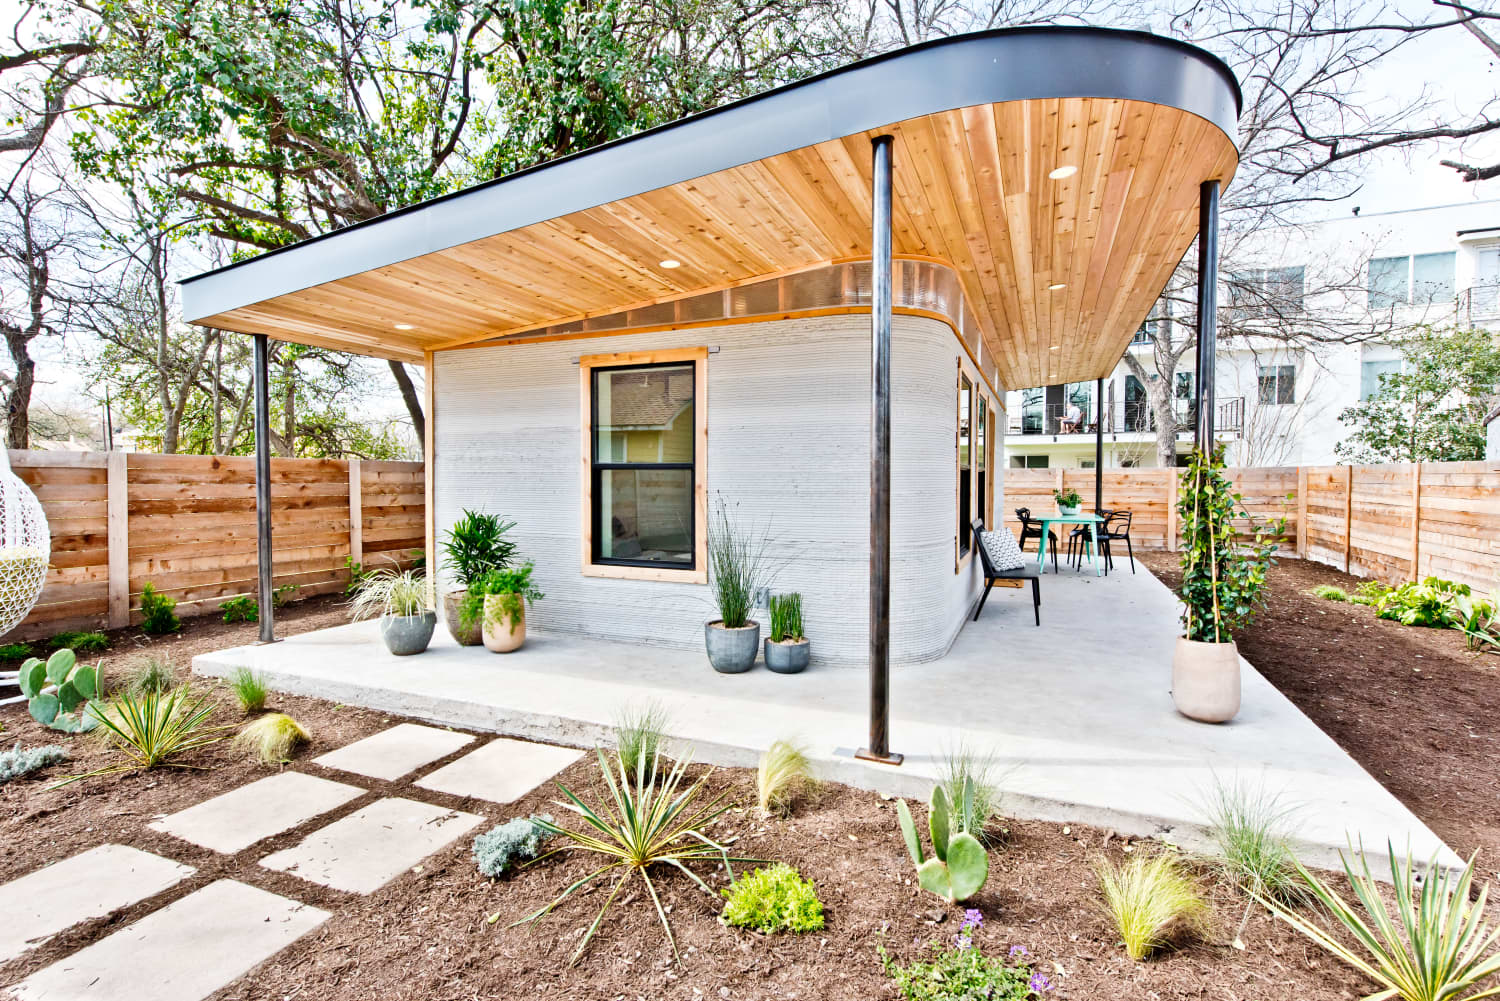 Is This Ultra-Affordable 3D-Printed Tiny House the Home of the Future? | Apartment Therapy